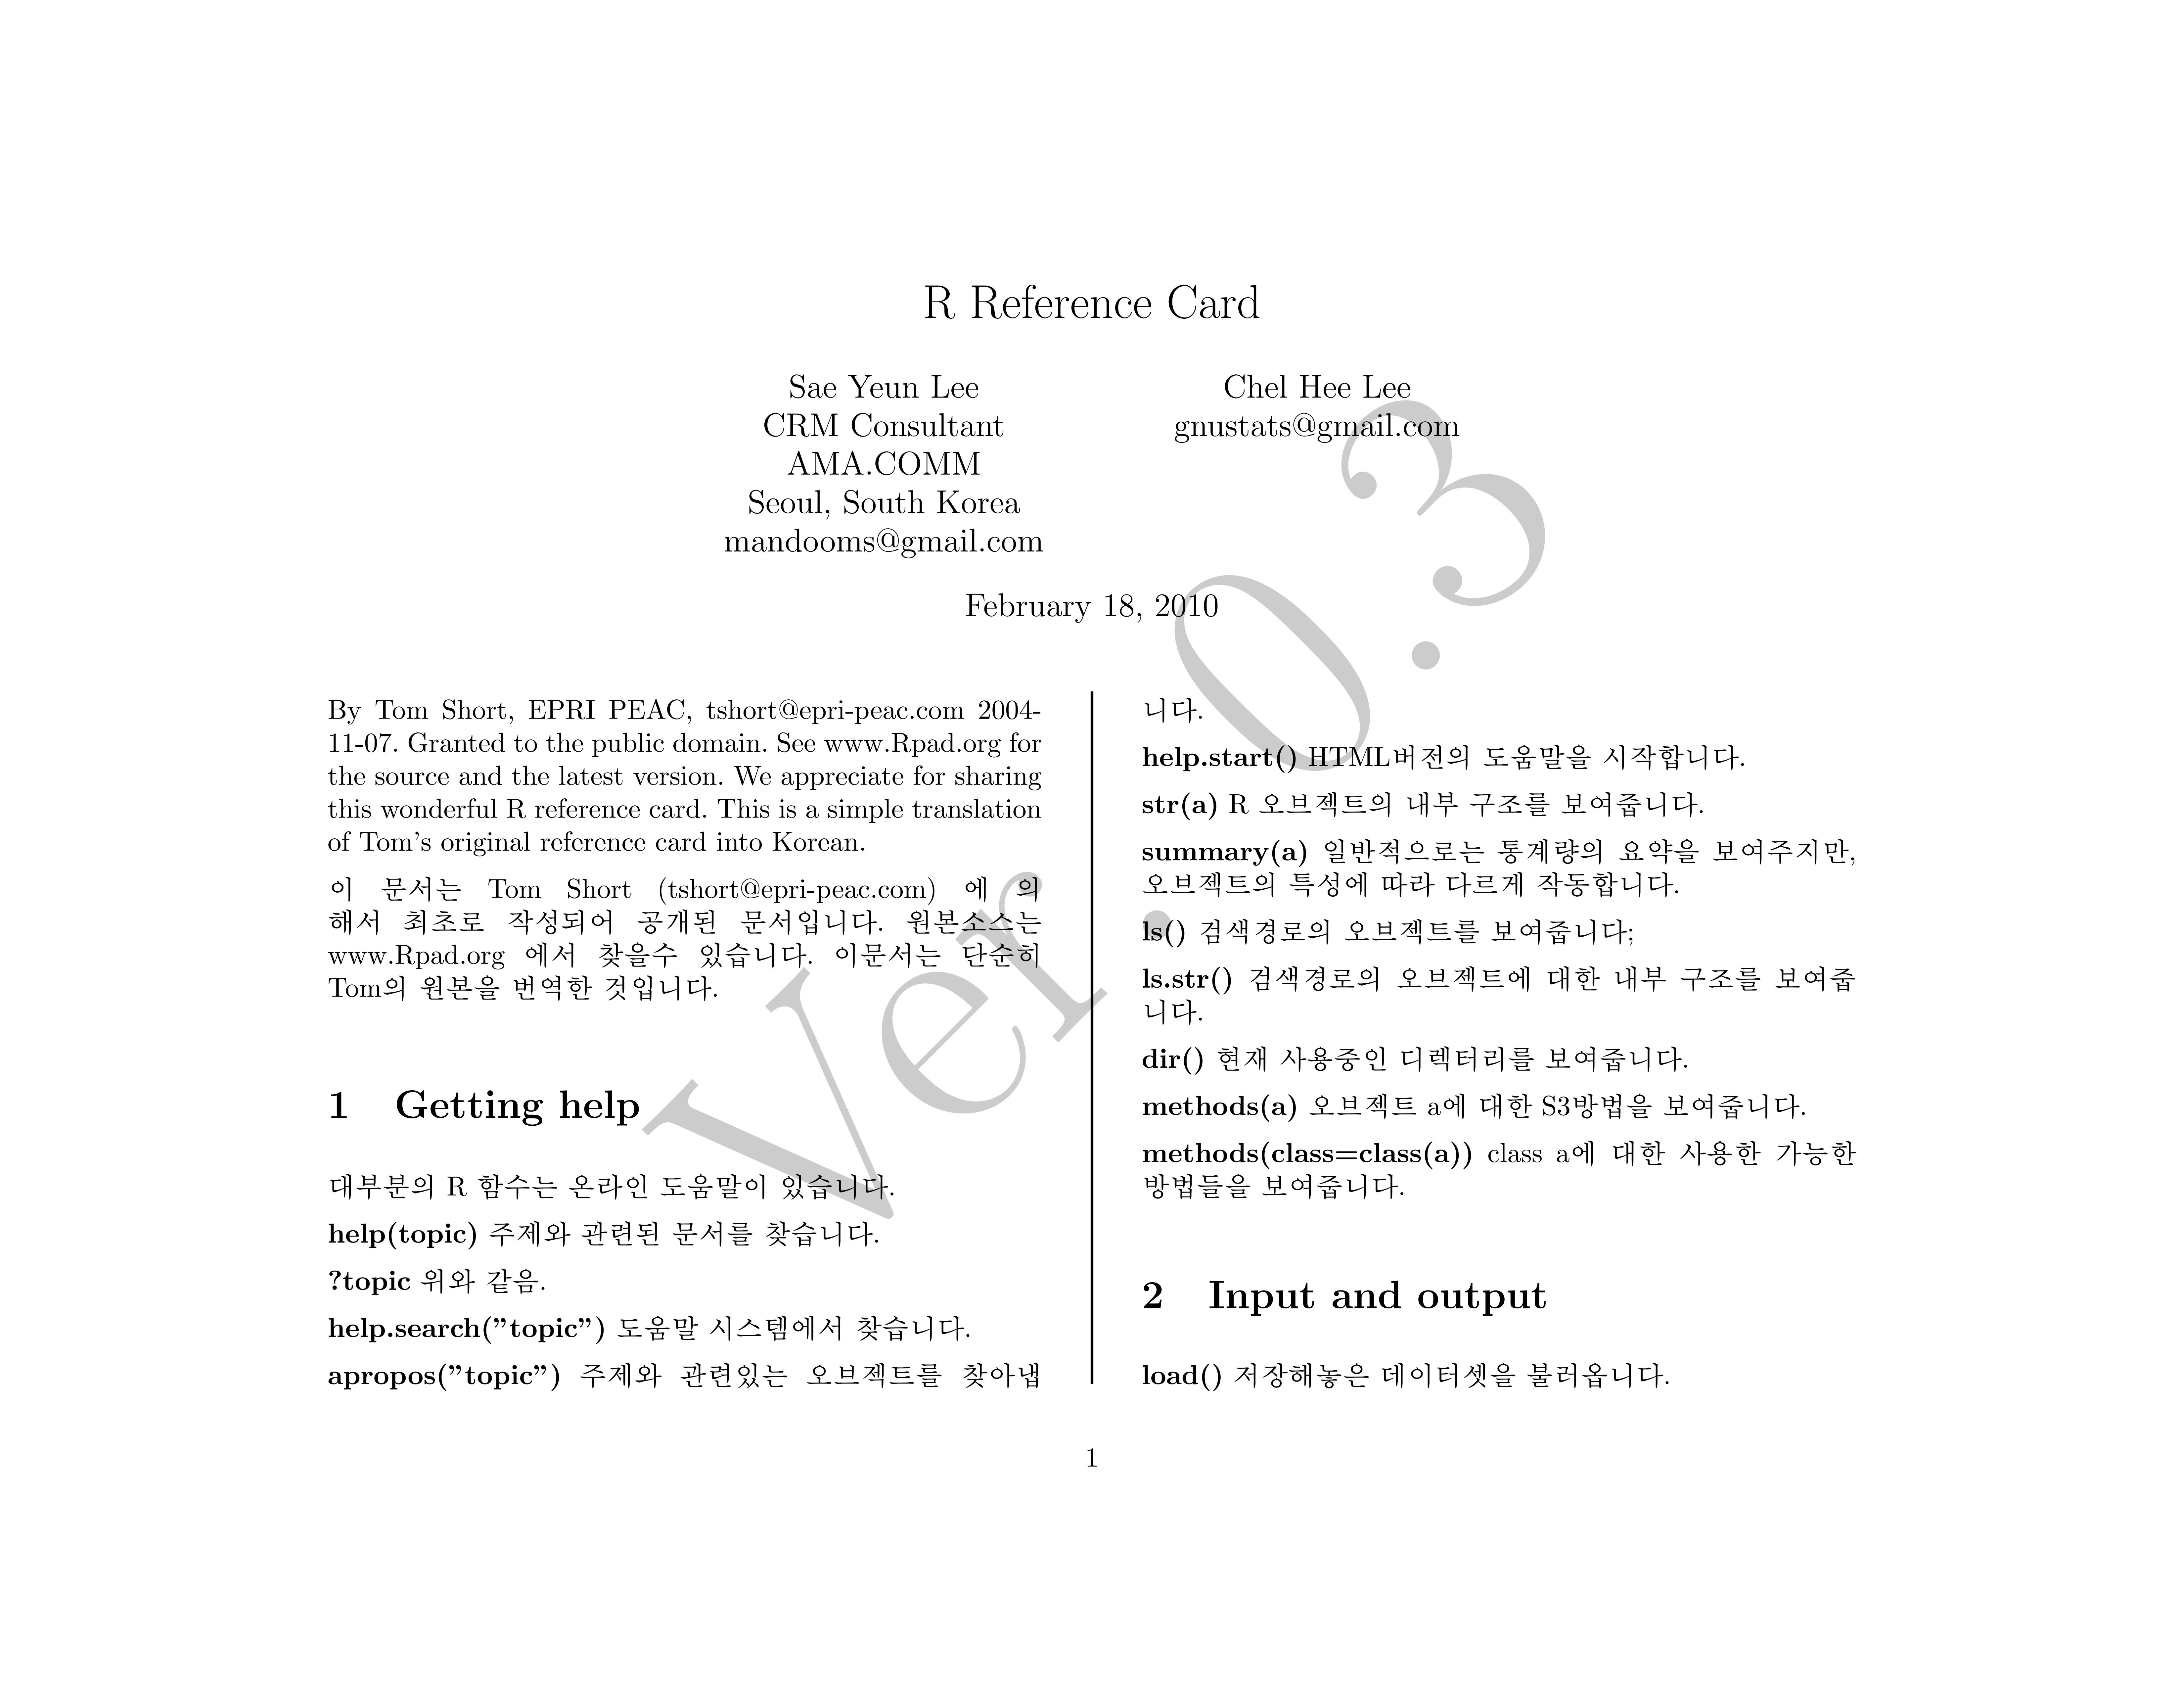 R Reference Card_1.png